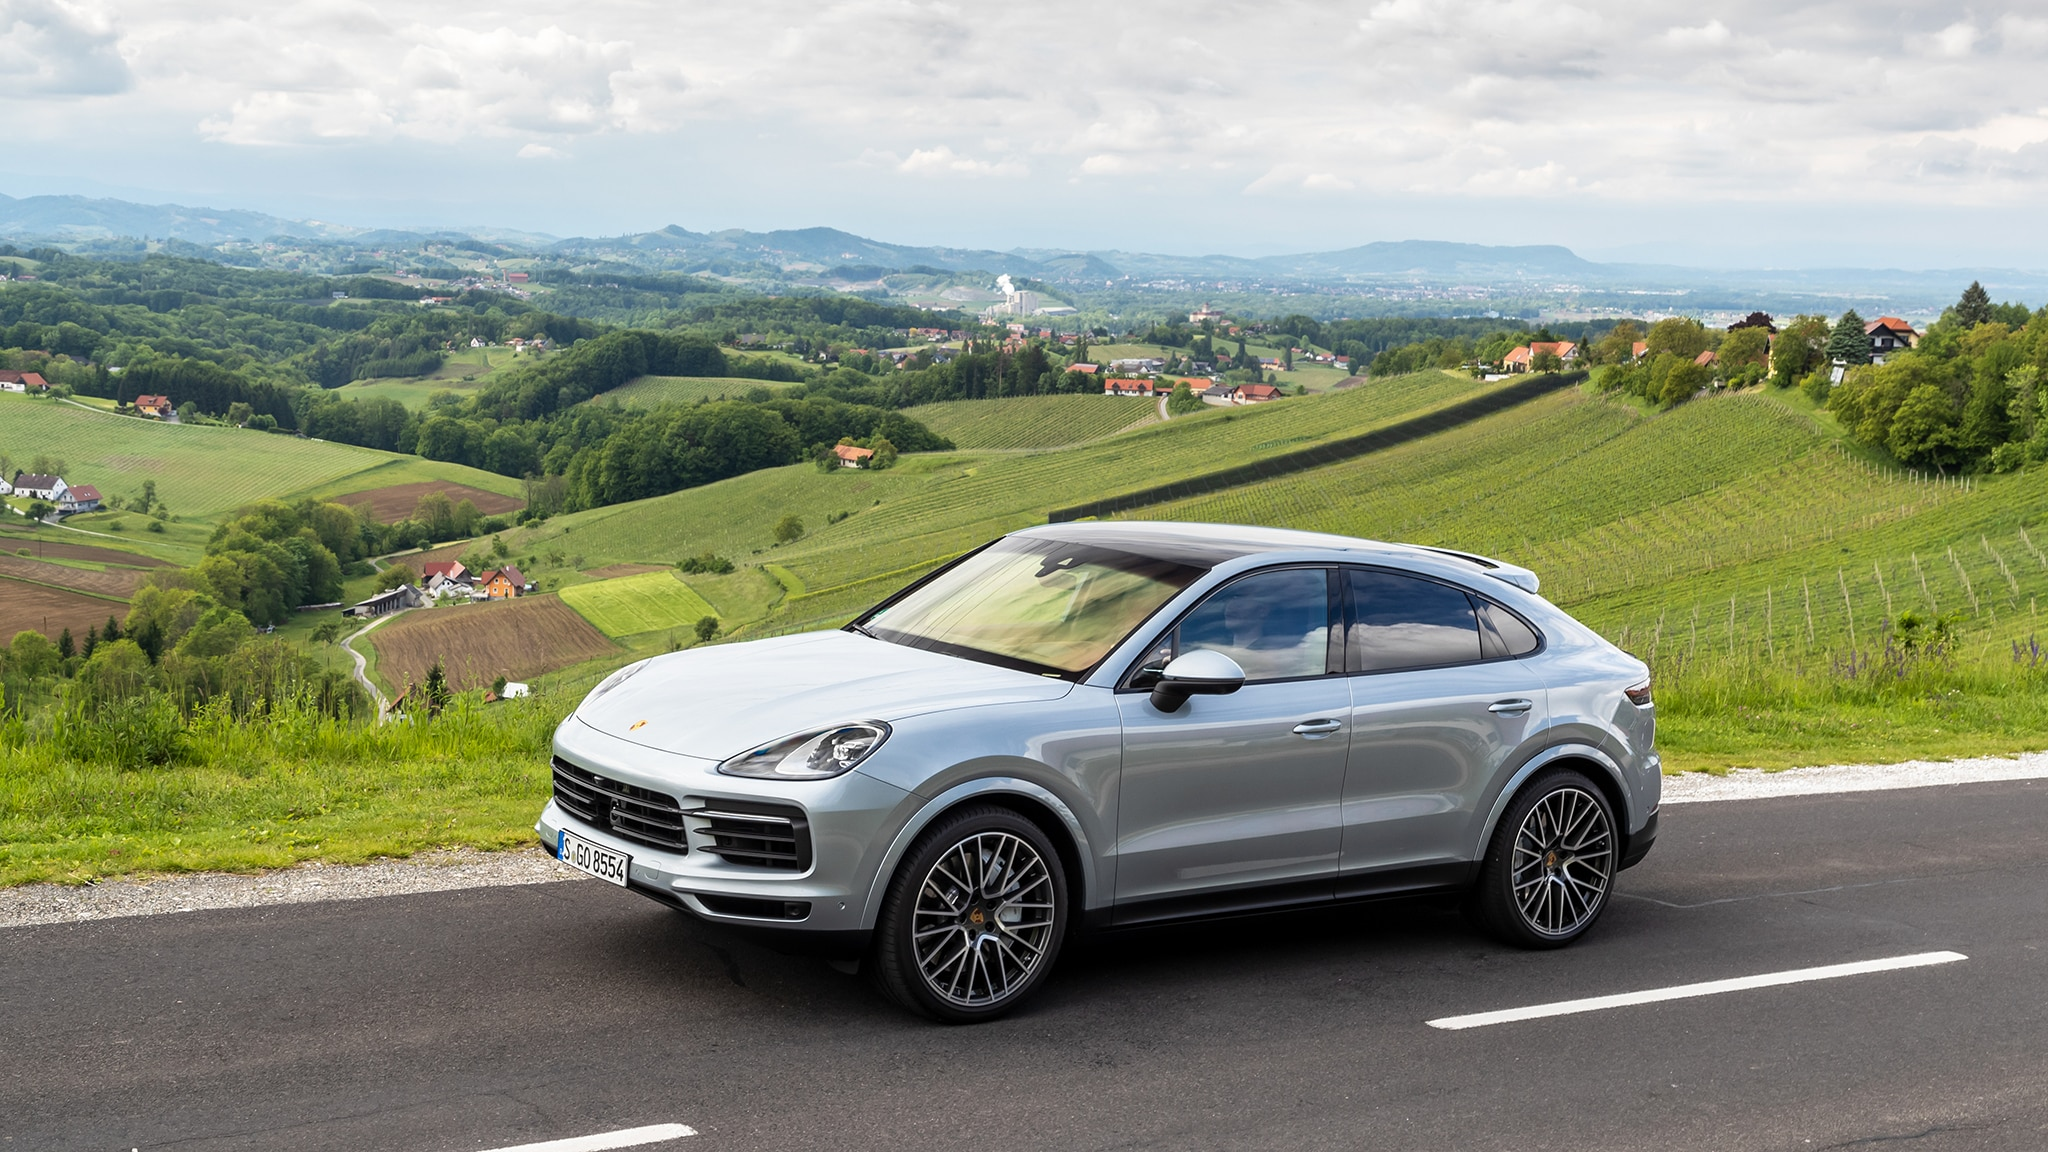 2020 Porsche Cayenne: Coupe Version, Design, Specs >> 2020 Porsche Cayenne Coupe First Drive Review Hulked Up Hot Hatch